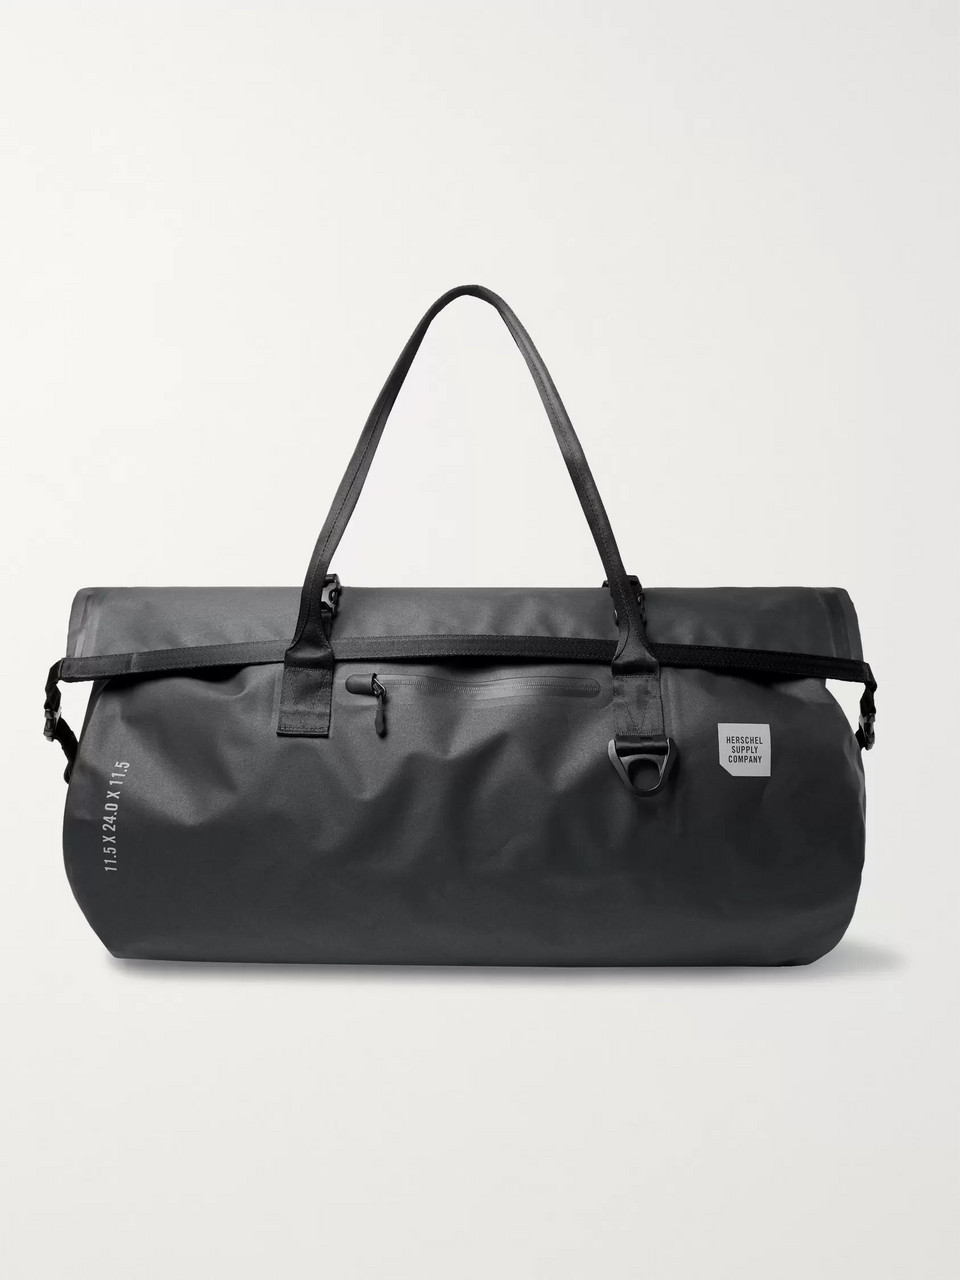 Herschel Supply Co Studio City Pack Coast Tarpaulin Roll-Top Duffle Bag